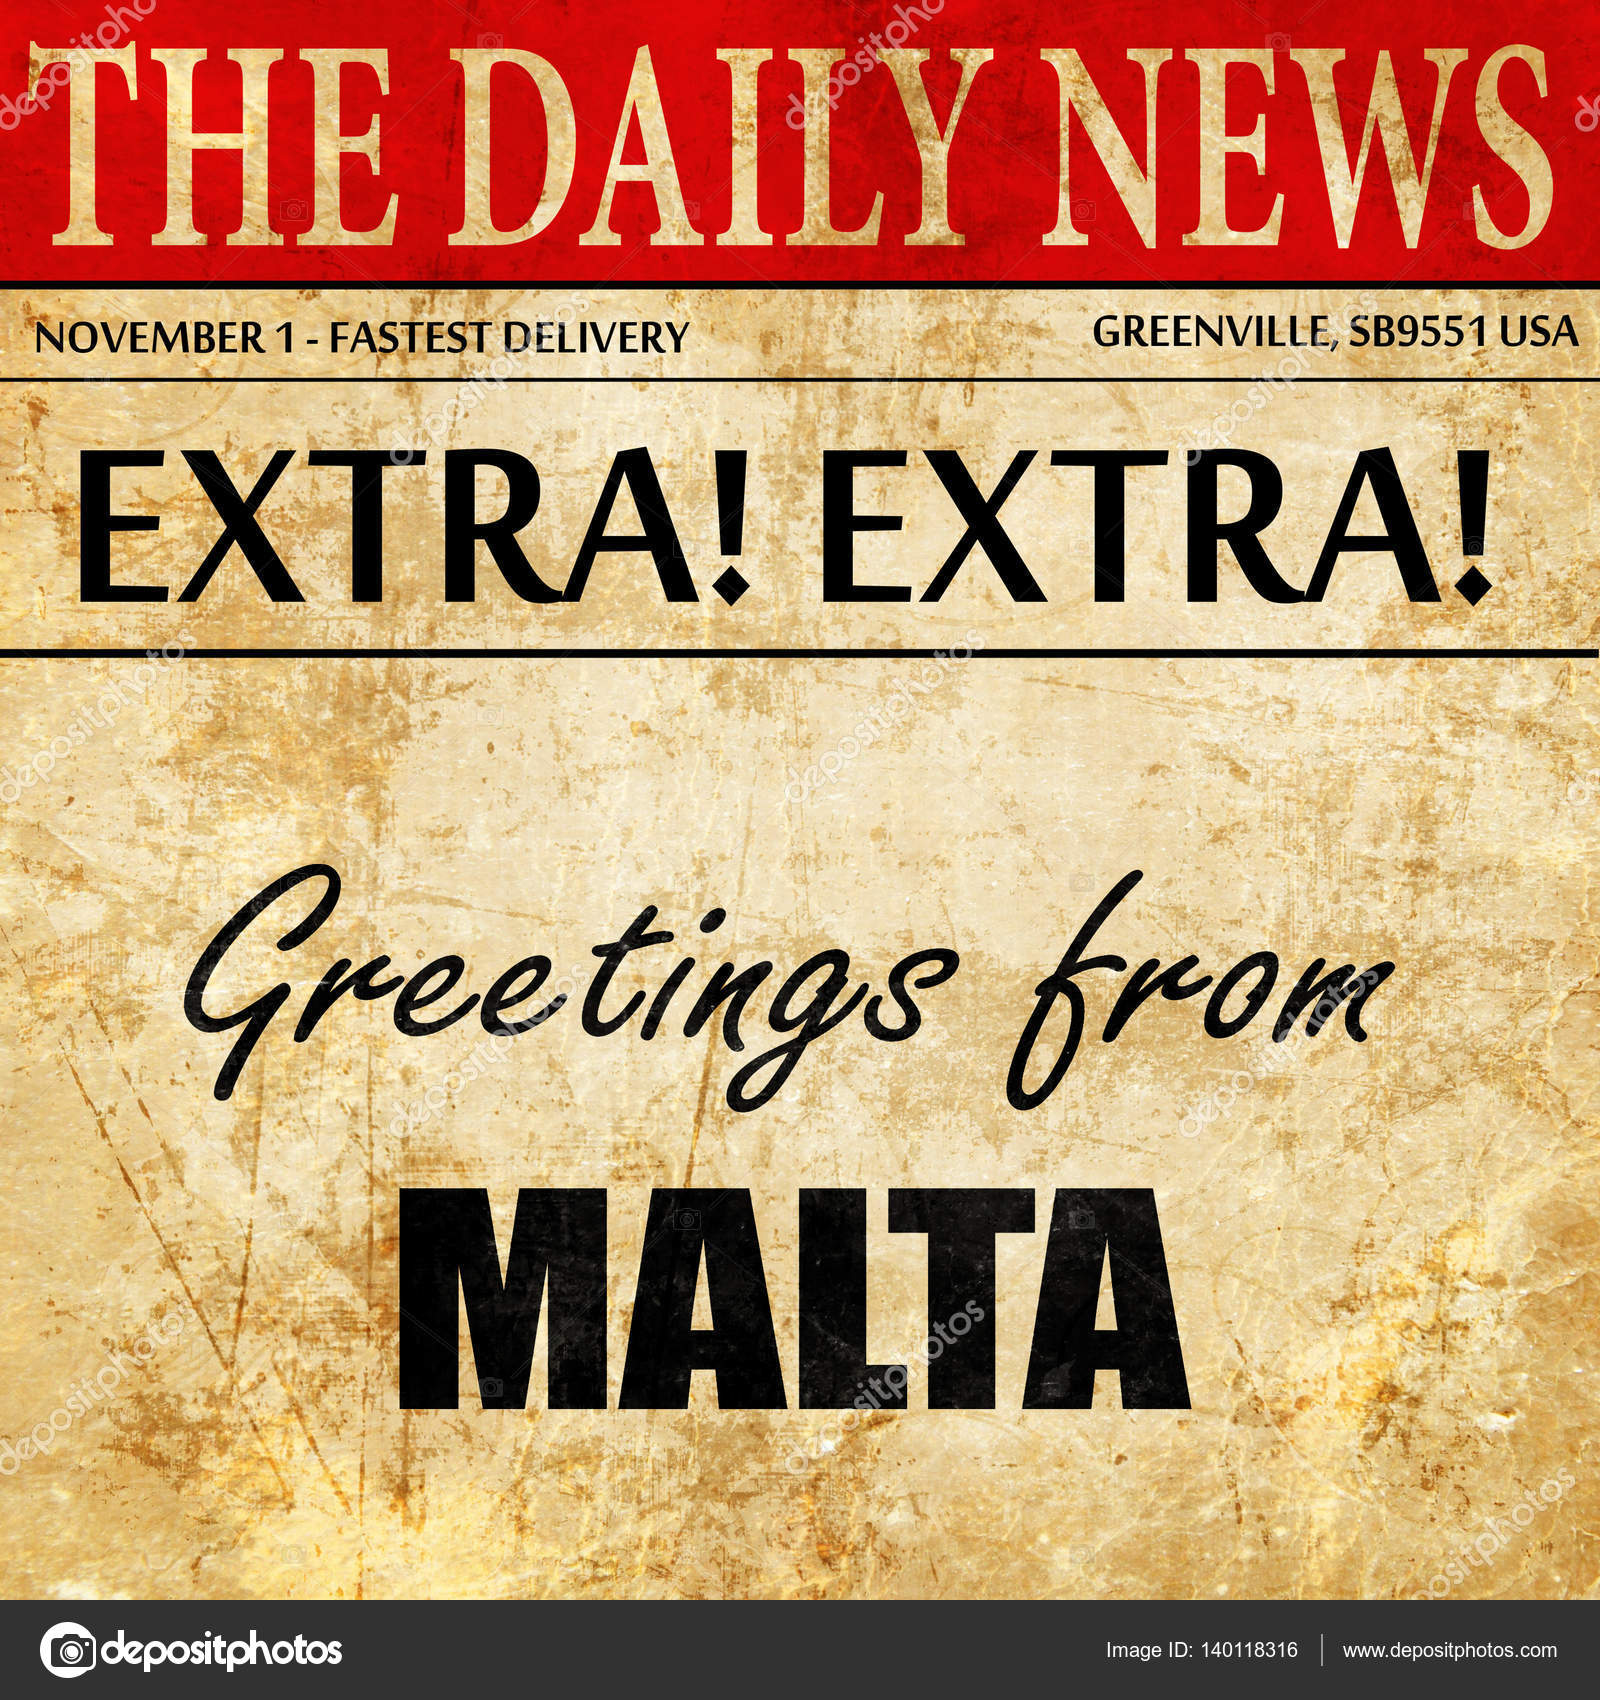 Greetings From Malta Newspaper Article Text Stock Photo